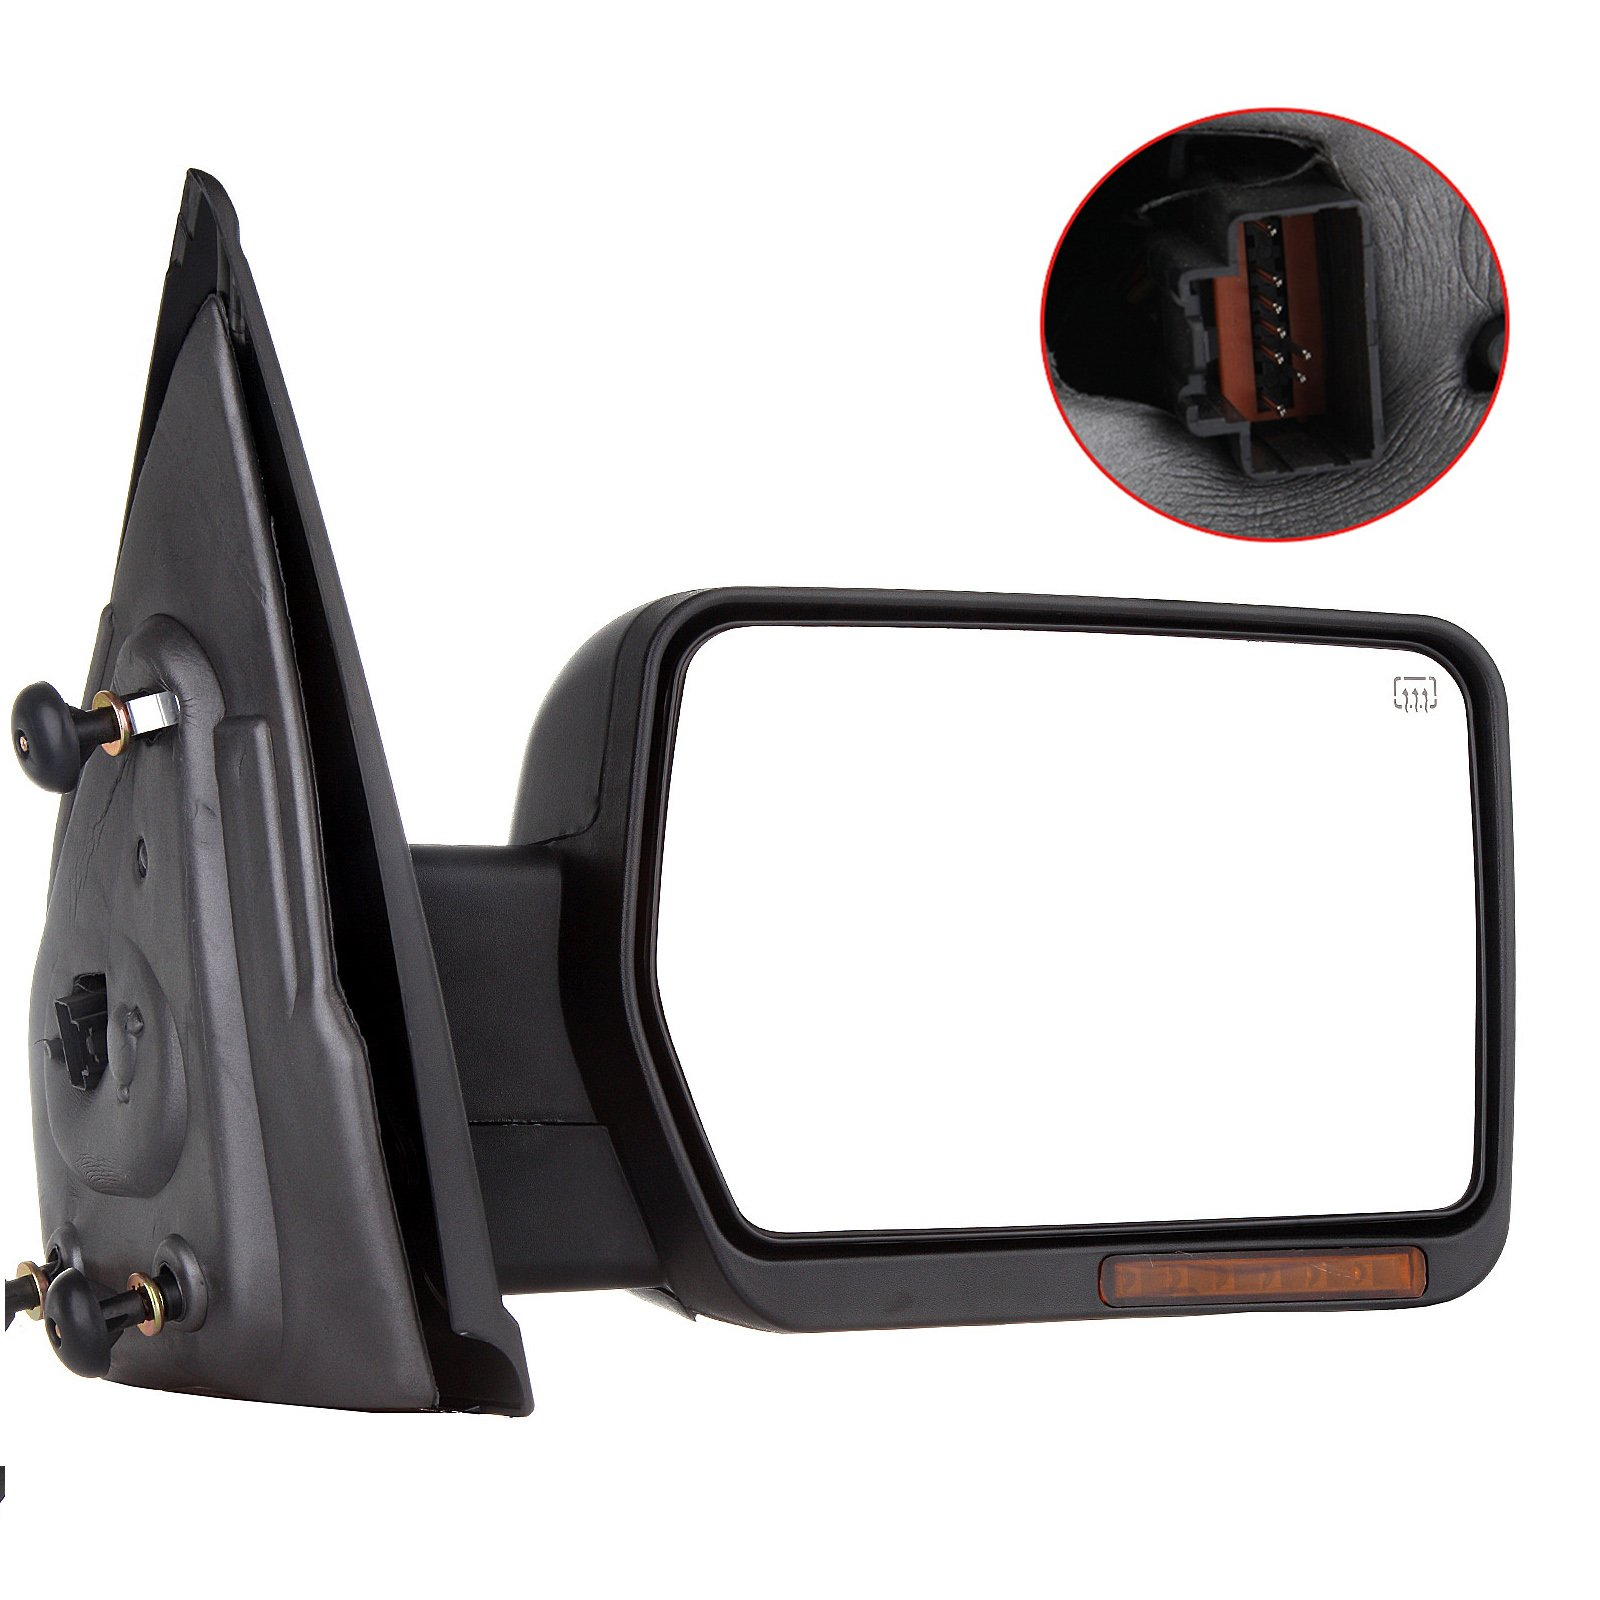 SCITOO Towing Mirrors, fit Ford Exterior Accessories Mirrors fit 2007-2014 Ford F-150 Truck with Amber Turn Signal and Puddle Light Heated Power Controlling and Manual Folding (Passenger Side)